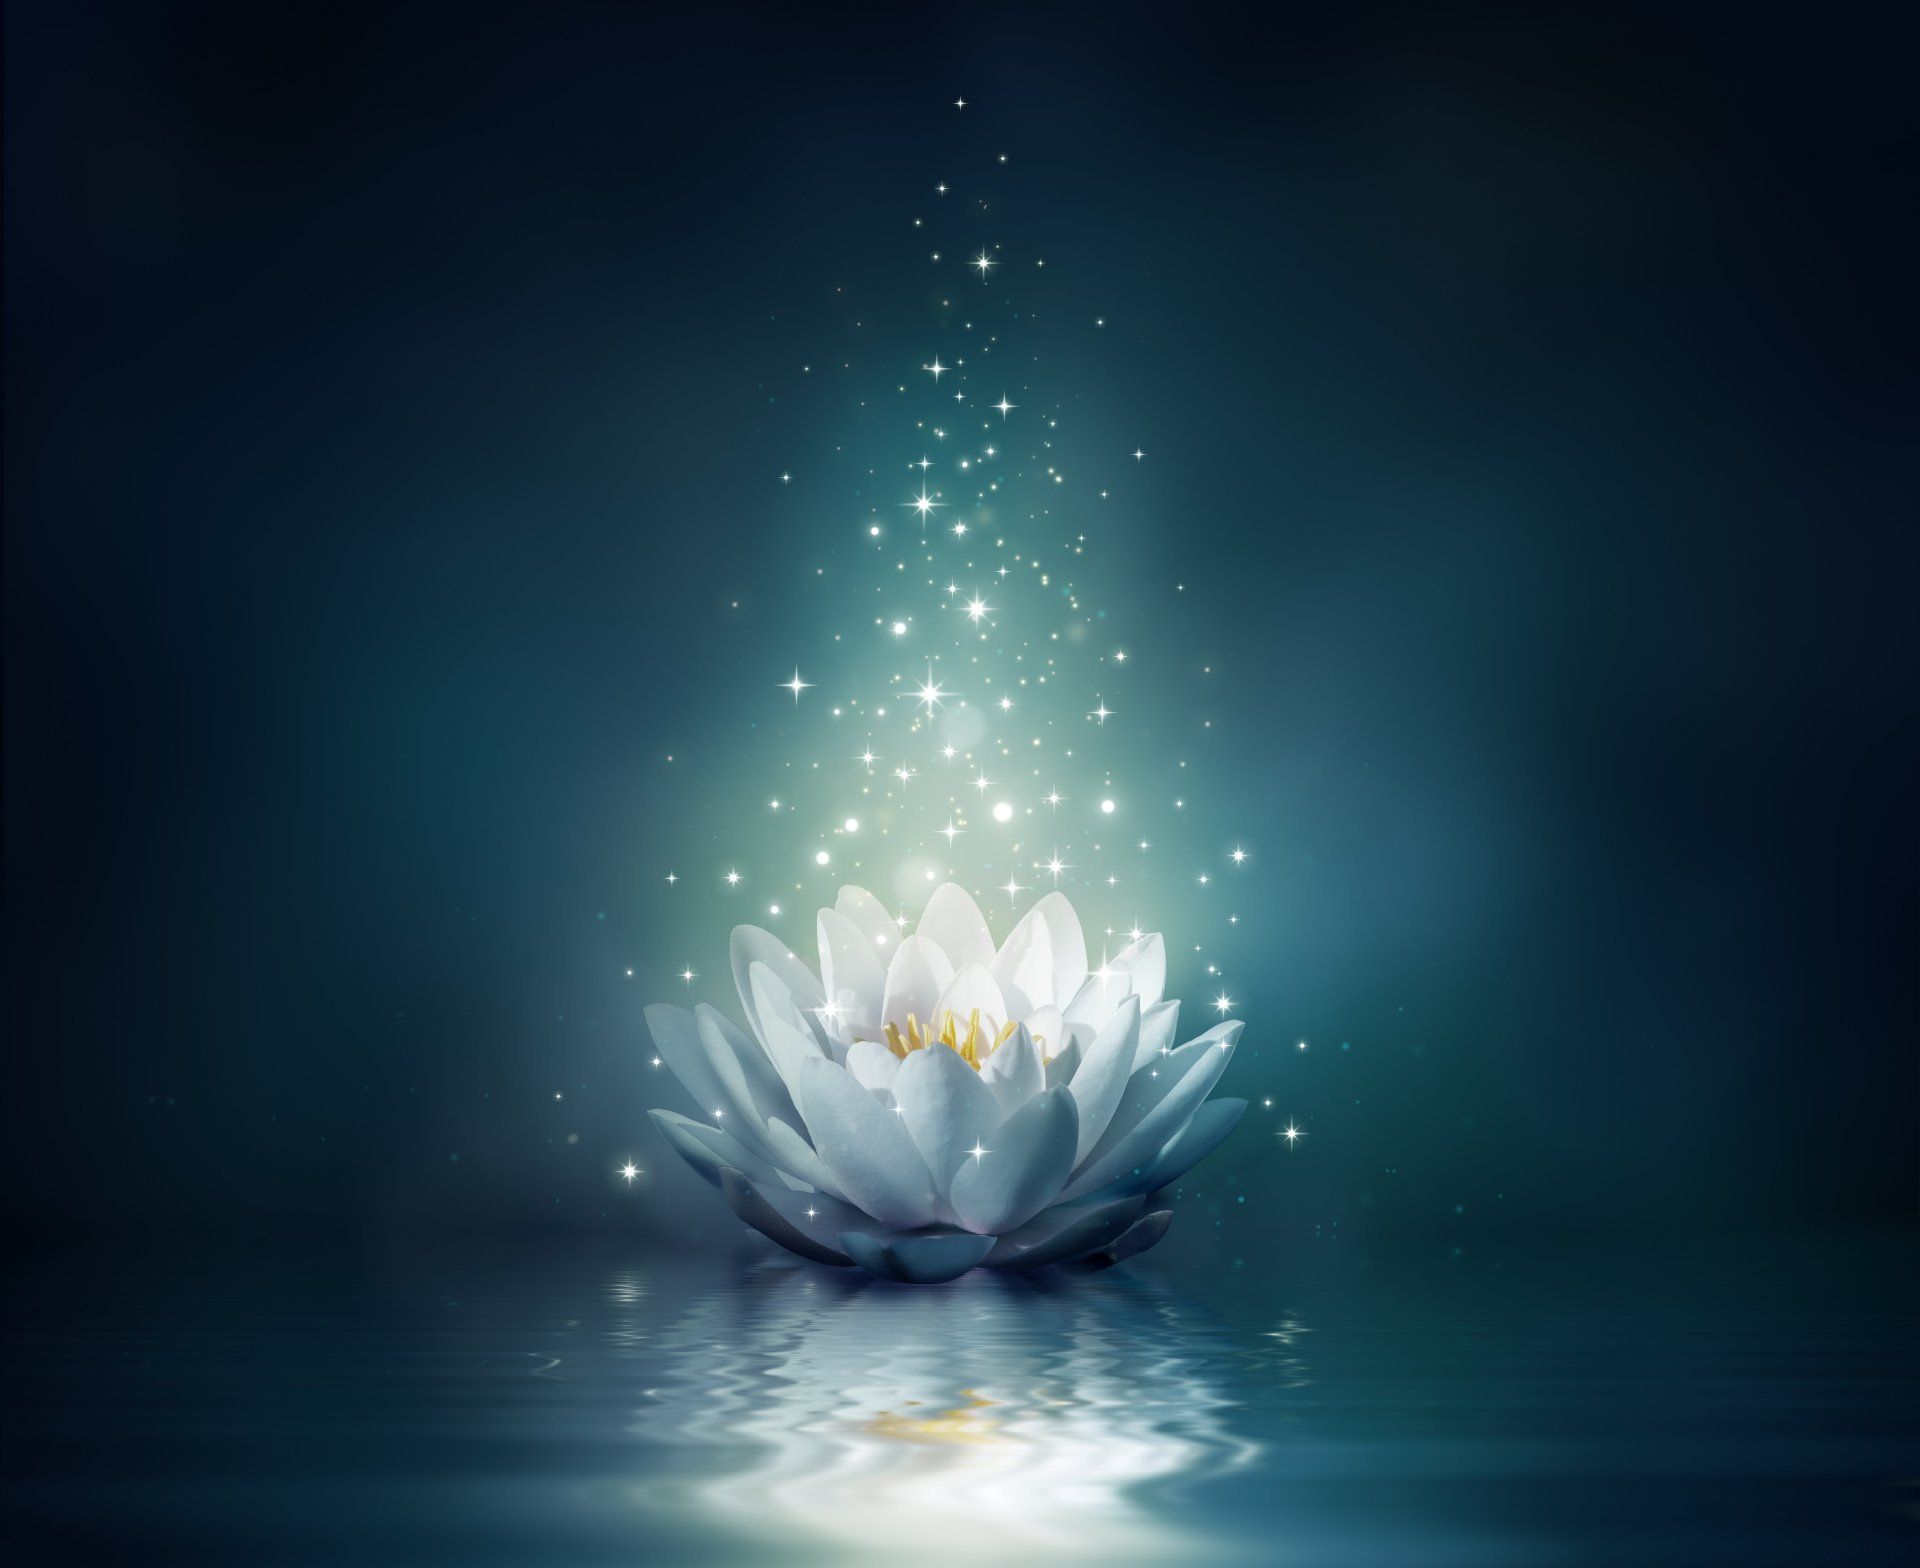 water lily flower bloom water sparkle lotus lights